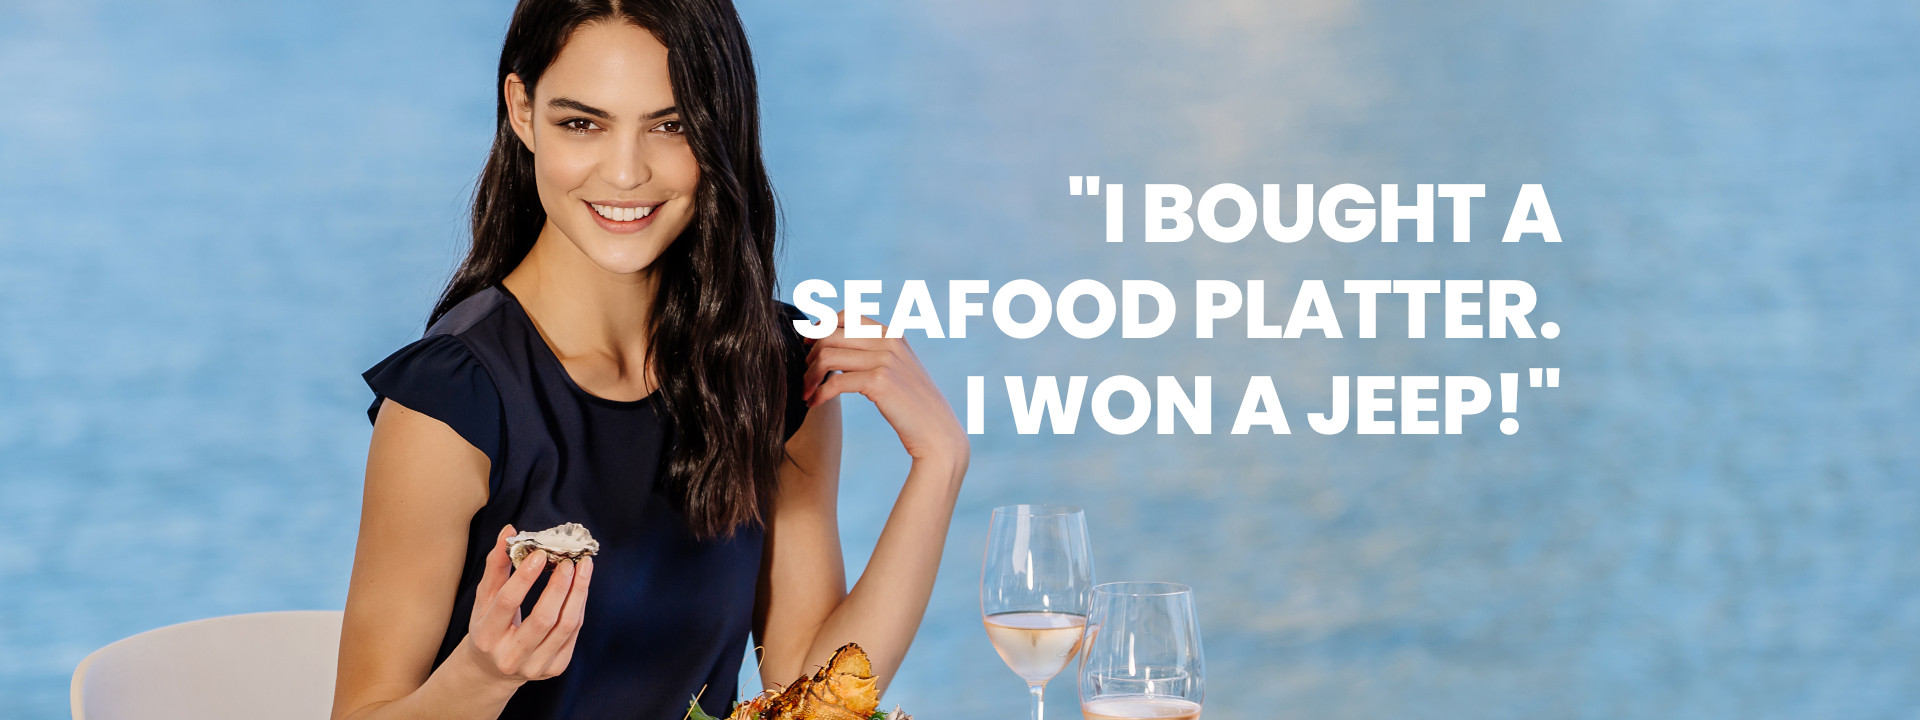 I bought a seafood platter 1920x720 text